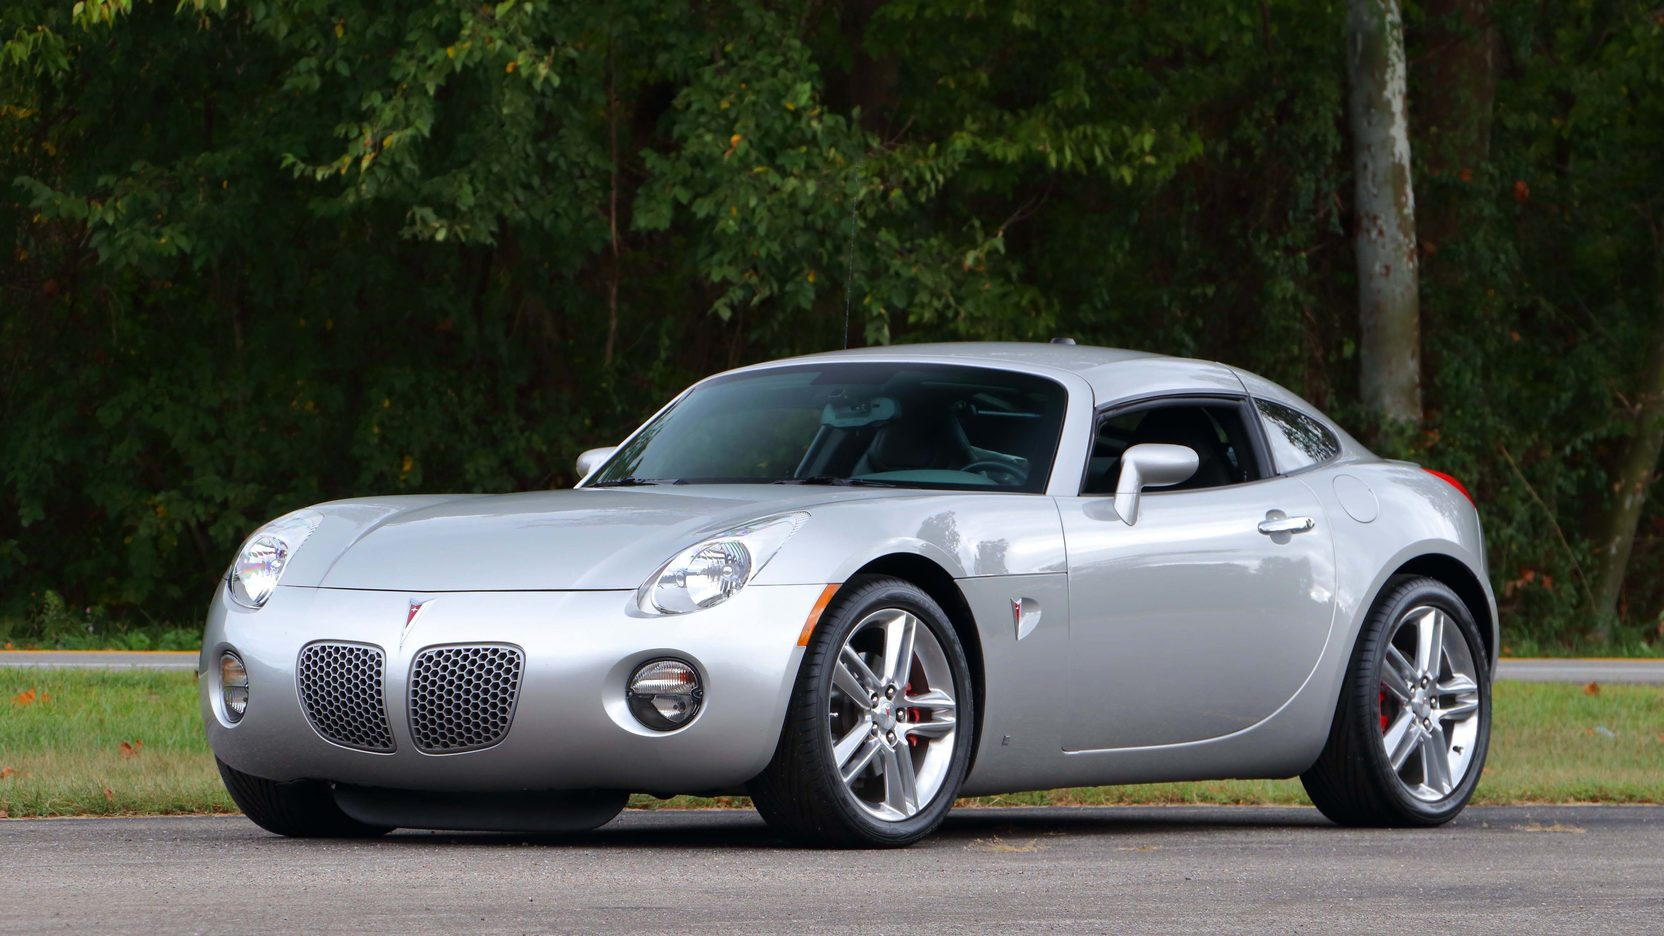 new agya 1.2 trd silver grand veloz 2009 pontiac solstice s242 kissimmee 2017